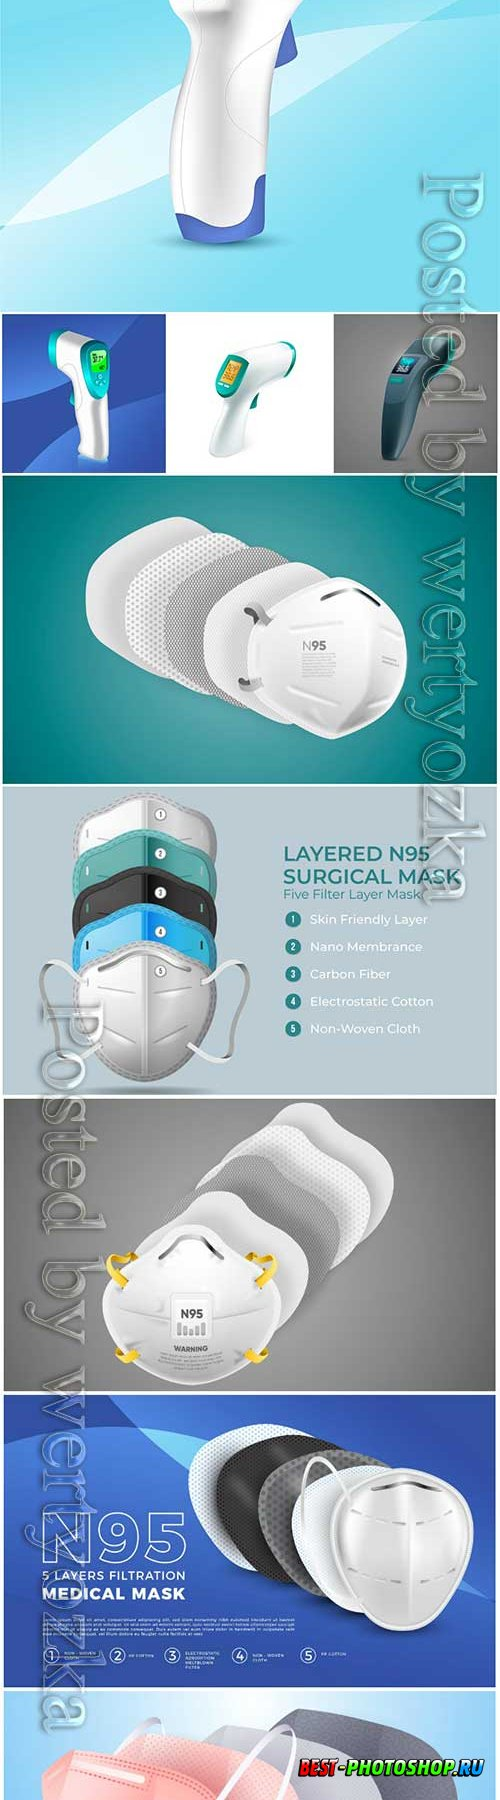 Realistic non-contact infrared thermometer, layered n95 surgical mask vector illustration